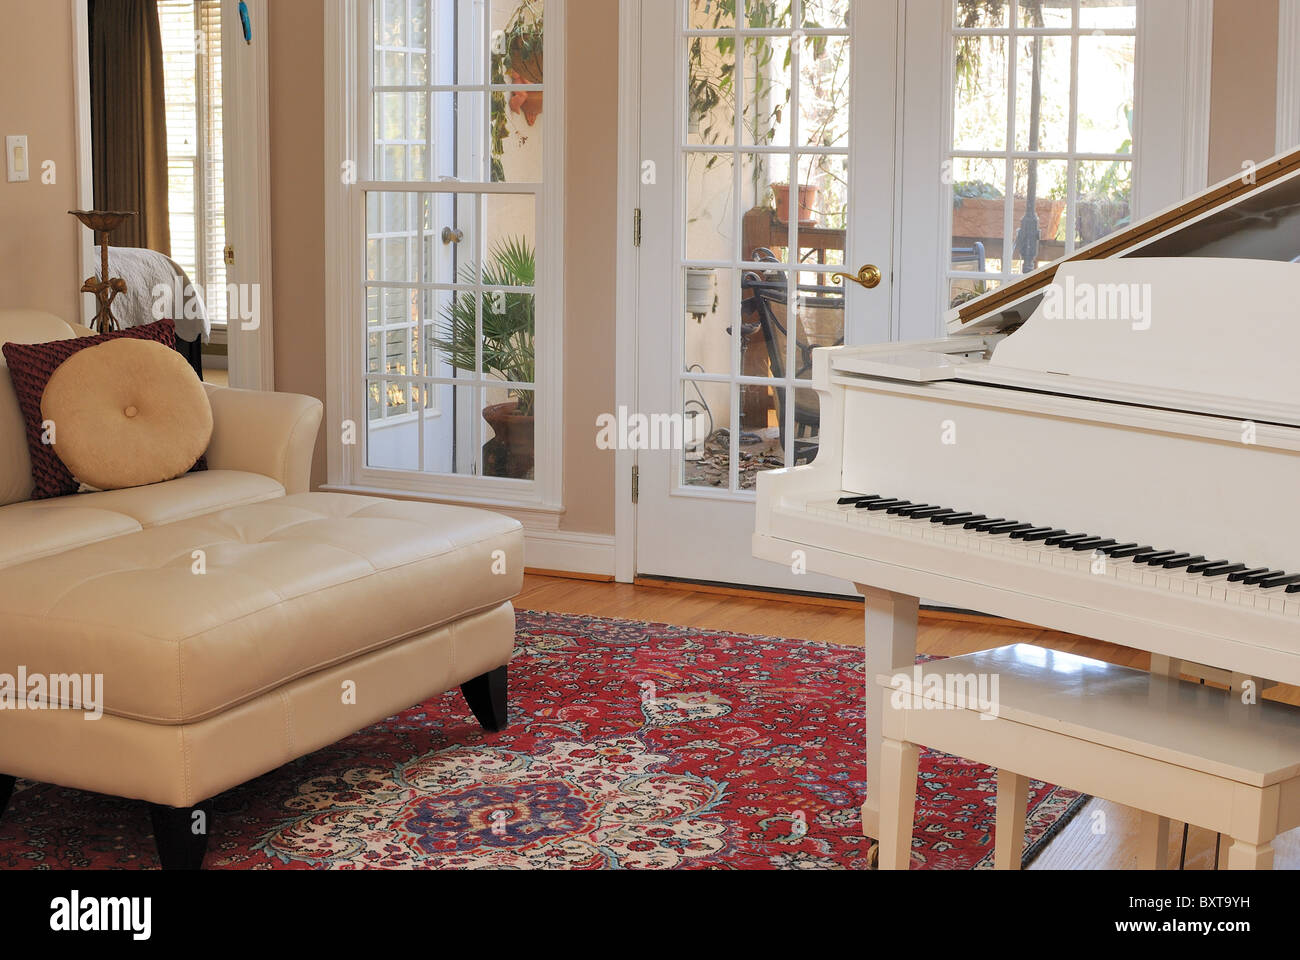 Contemporary Living Room Interior with sofa, couch, piano, and window view of the patio deck. - Stock Image